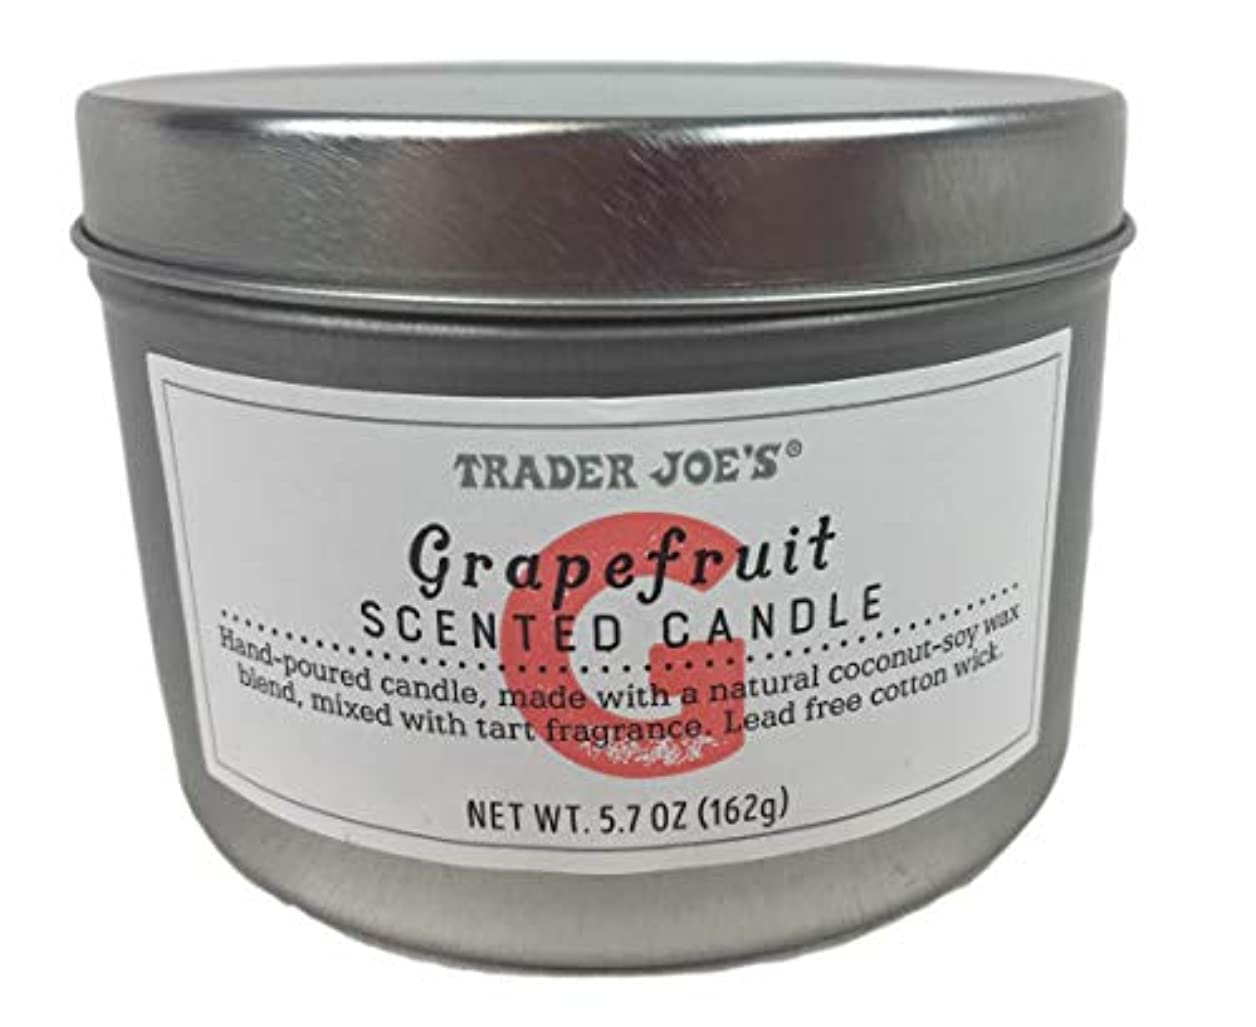 そして薬用違反Trader Joe's Grapefruit Scented Candle NET WT 170ml (162g)